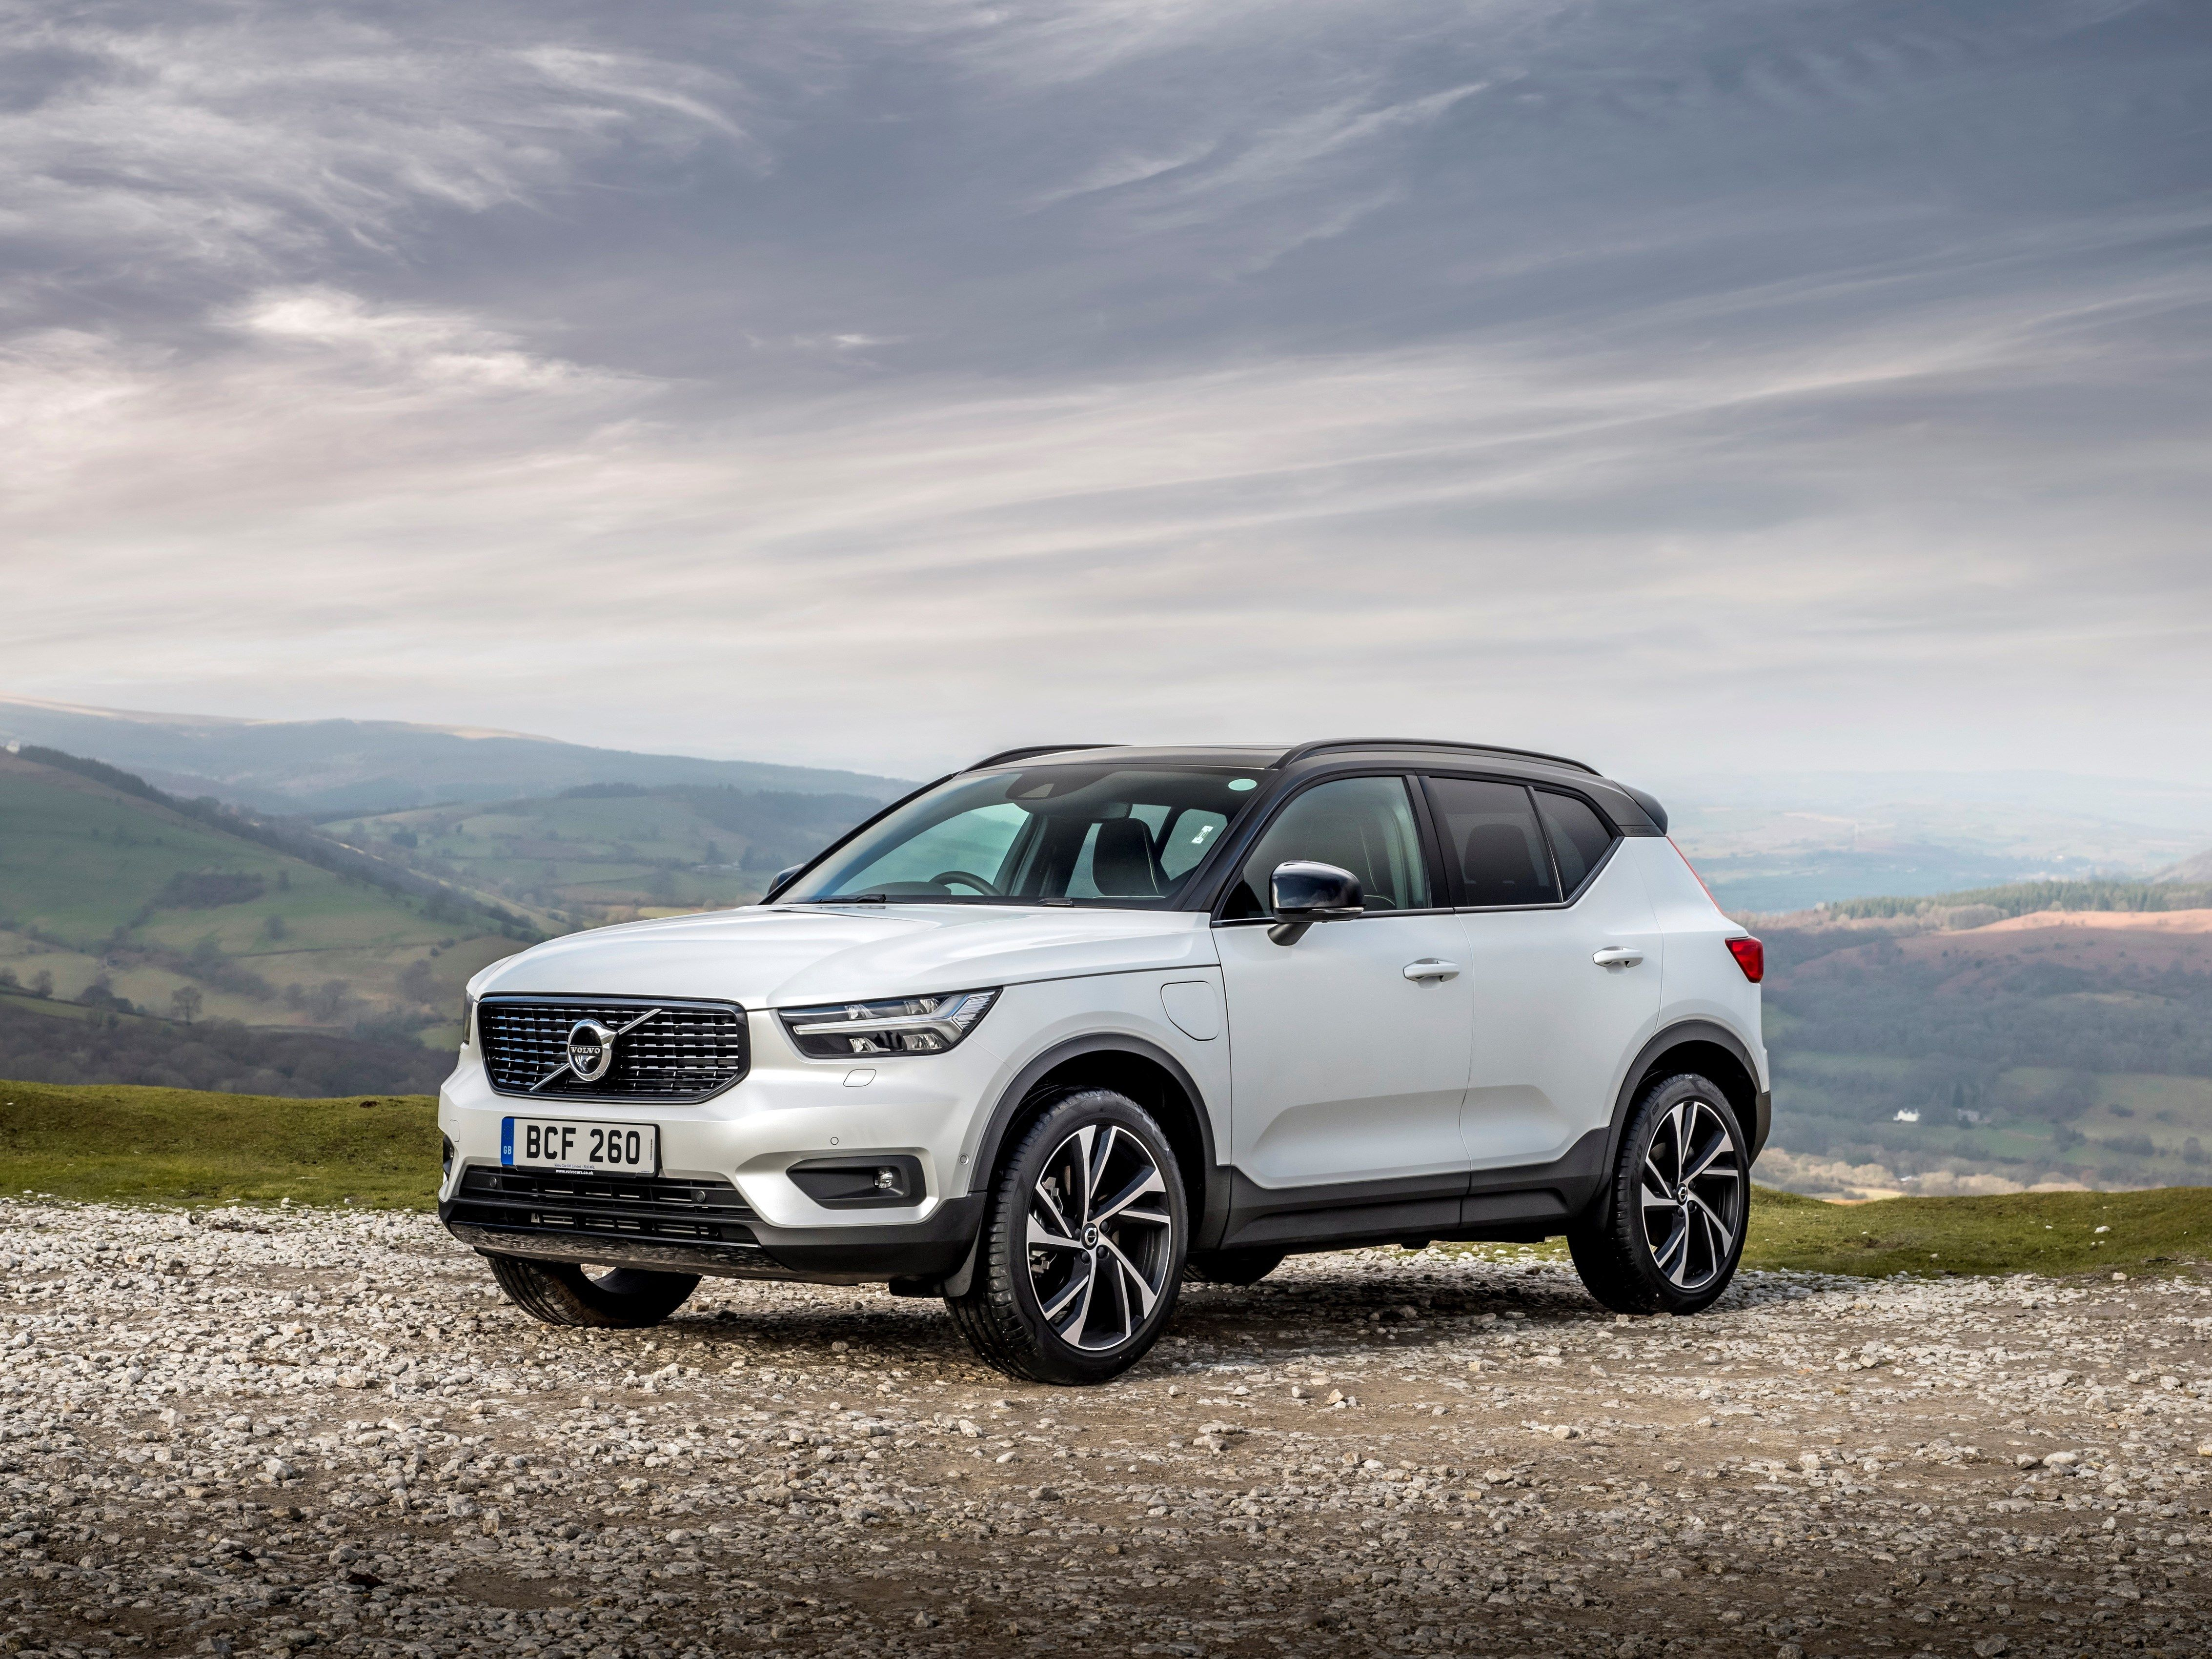 Volvo remain the leaders in the Electric Vehicle Market